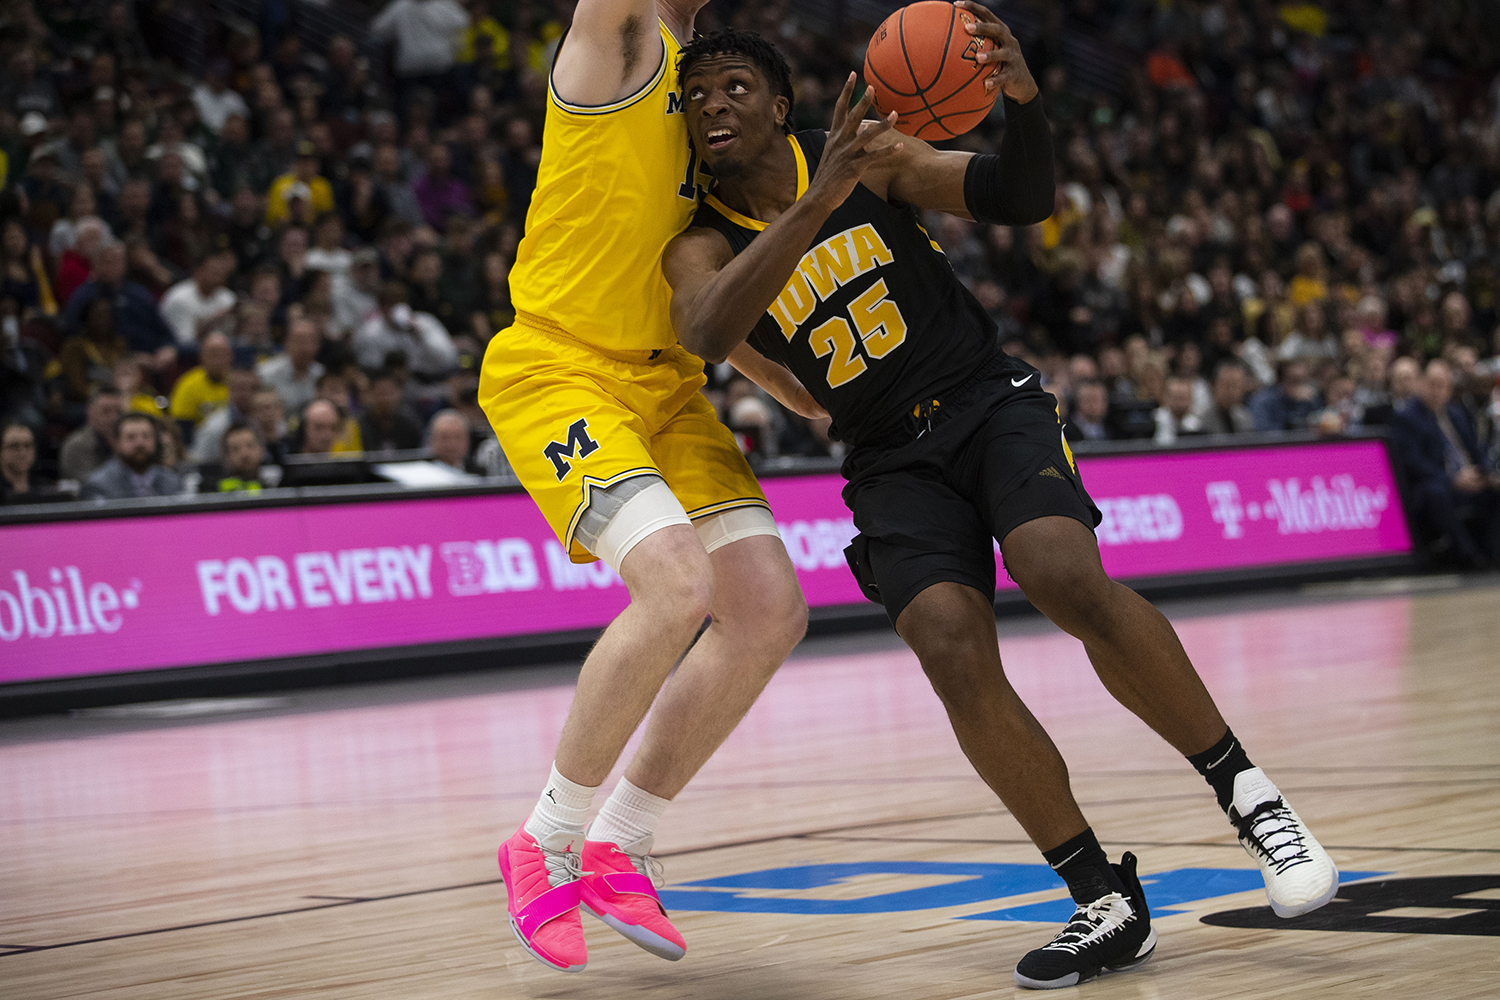 Iowa+forward+Tyler+Cook+drives+to+the+hoop+during+the+Iowa%2FMichigan+Big+Ten+Tournament+men%27s+basketball+game+in+the+United+Center+in+Chicago+on+Friday%2C+March+15%2C+2019.+The+Wolverines+defeated+the+Hawkeyes%2C+74-53.+